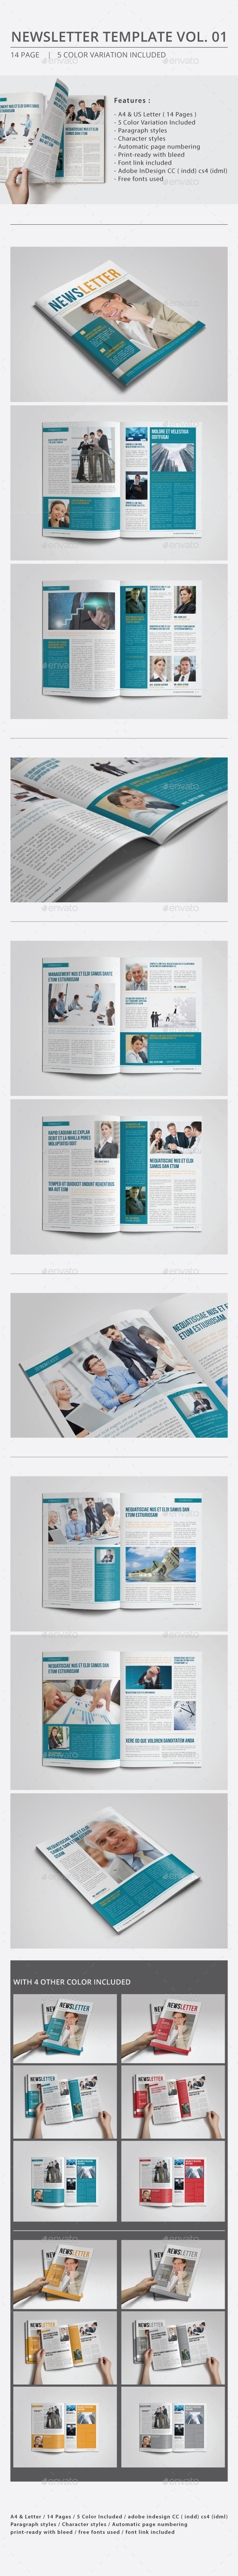 Newsletter Template Vol.01 - Newsletters Print Templates